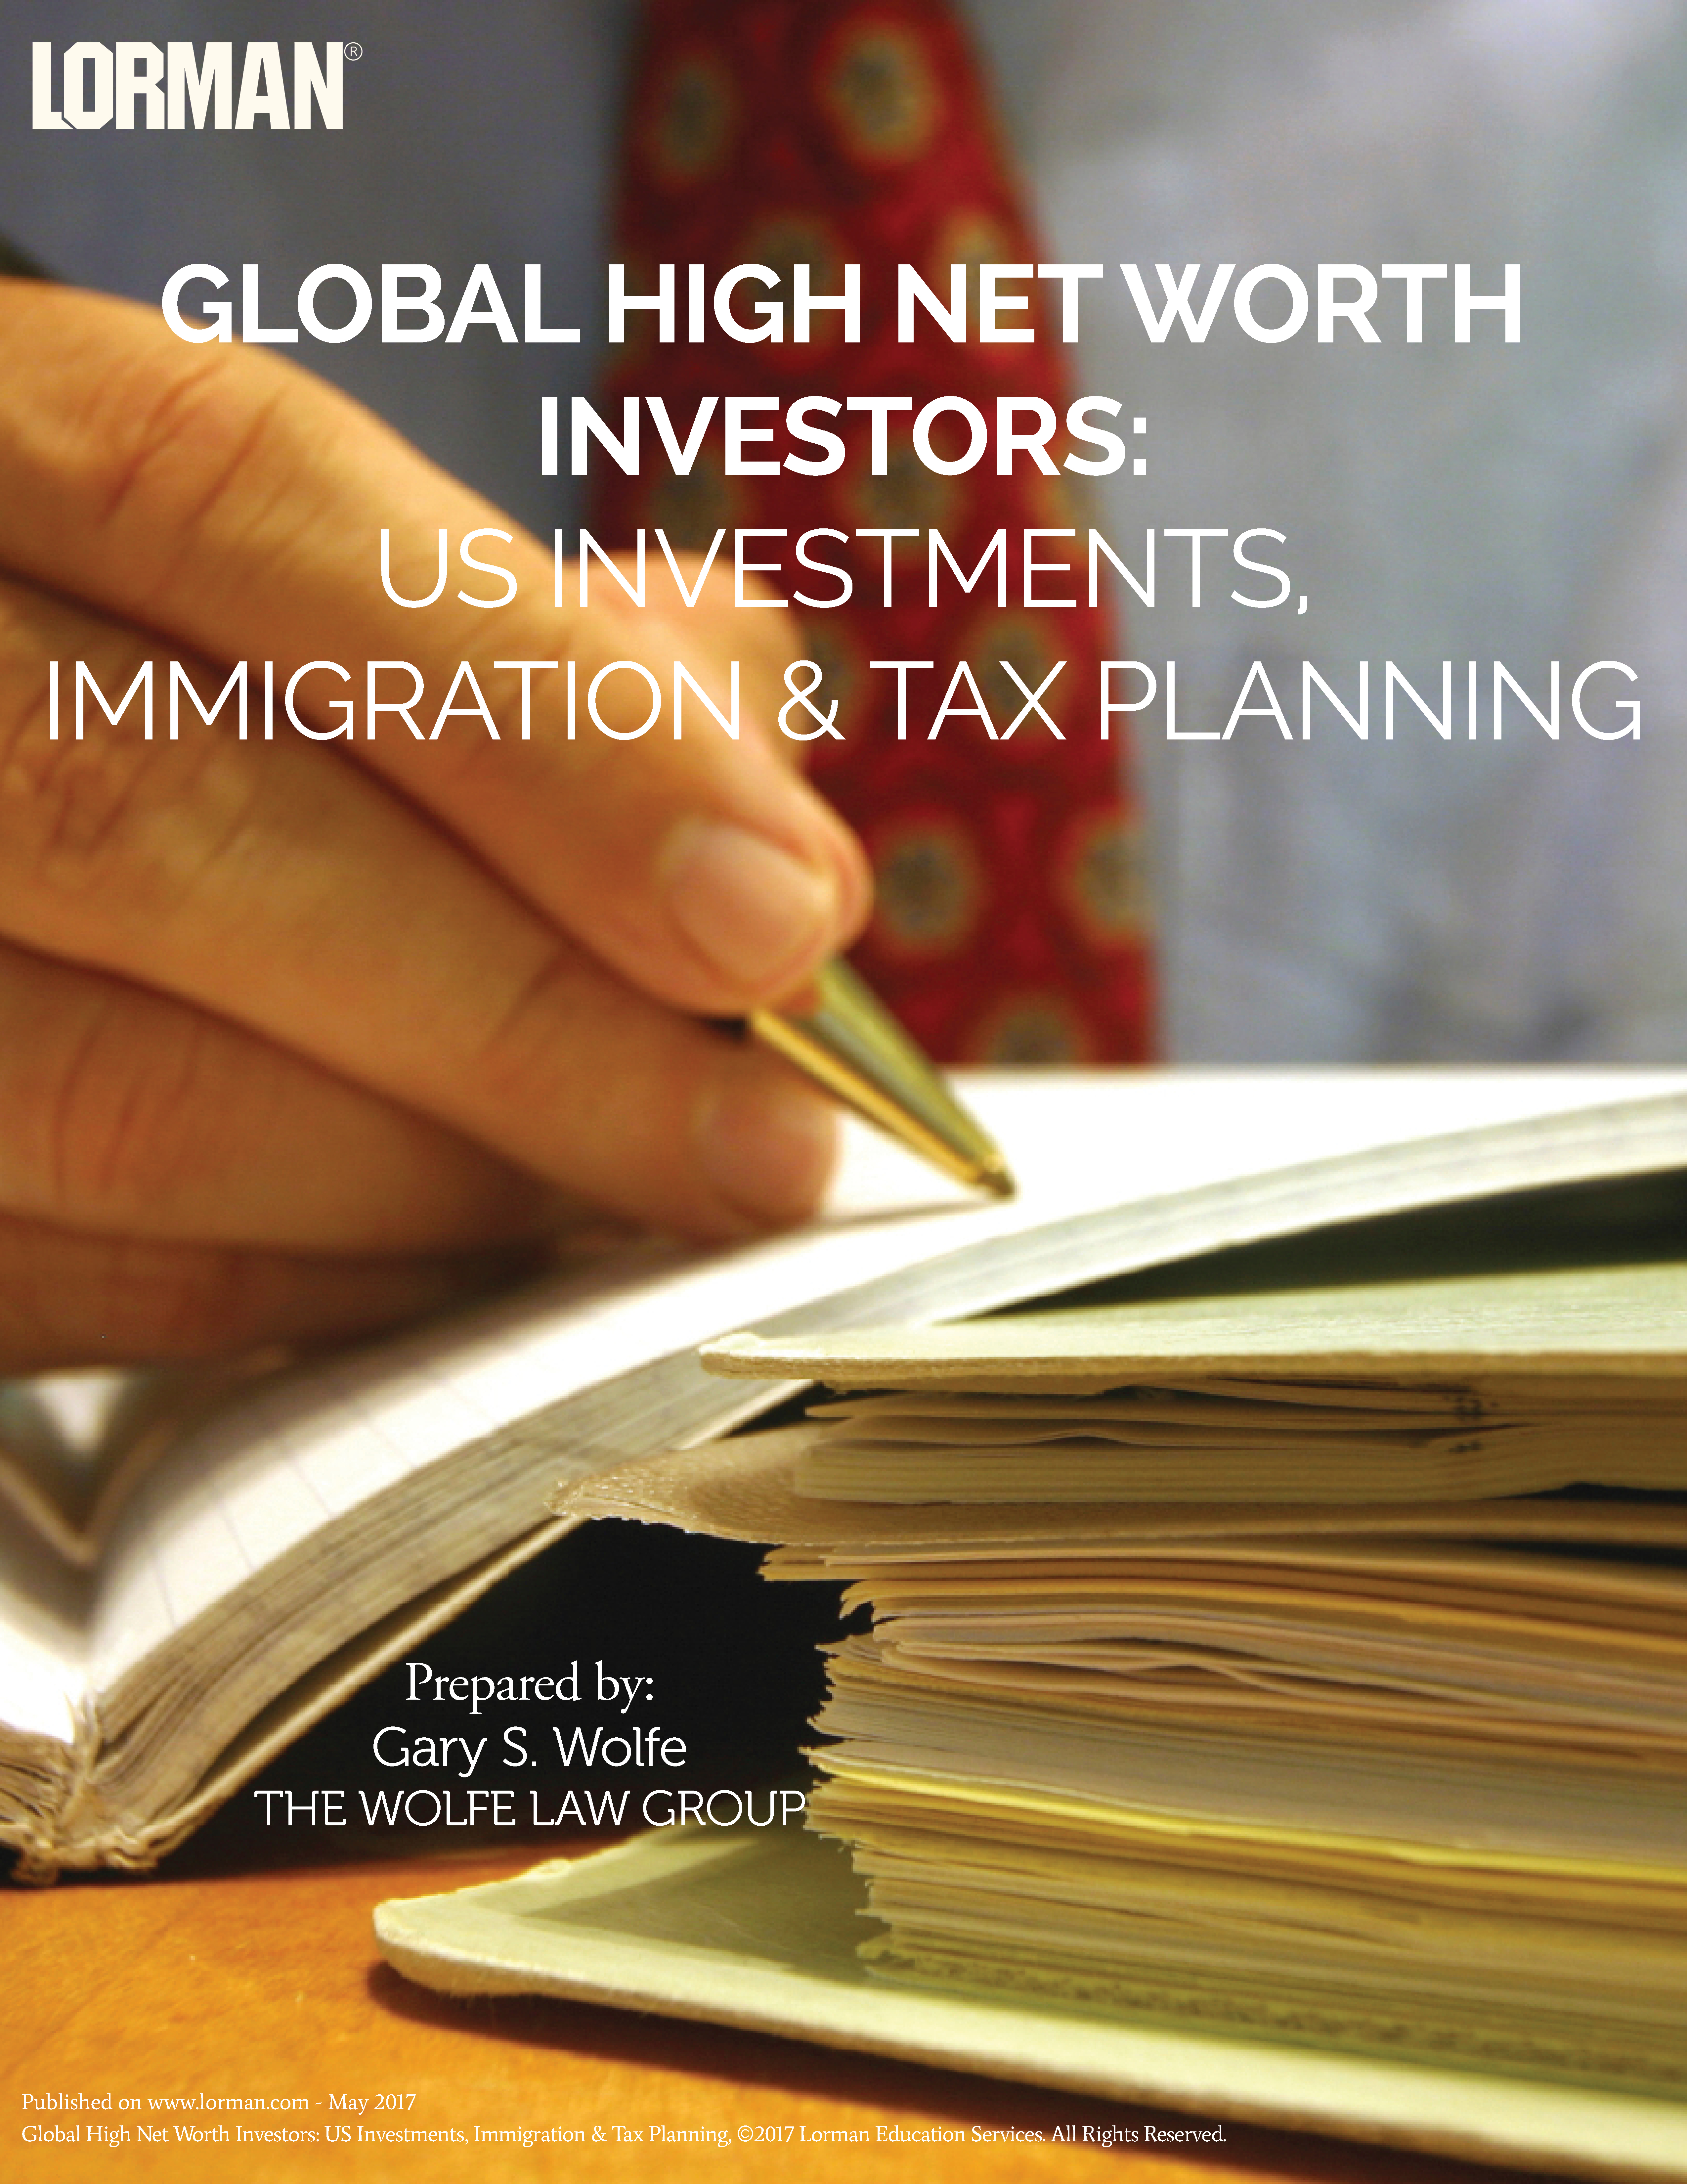 Global High Net Worth Investors: US Investments, Immigration & Tax Planning